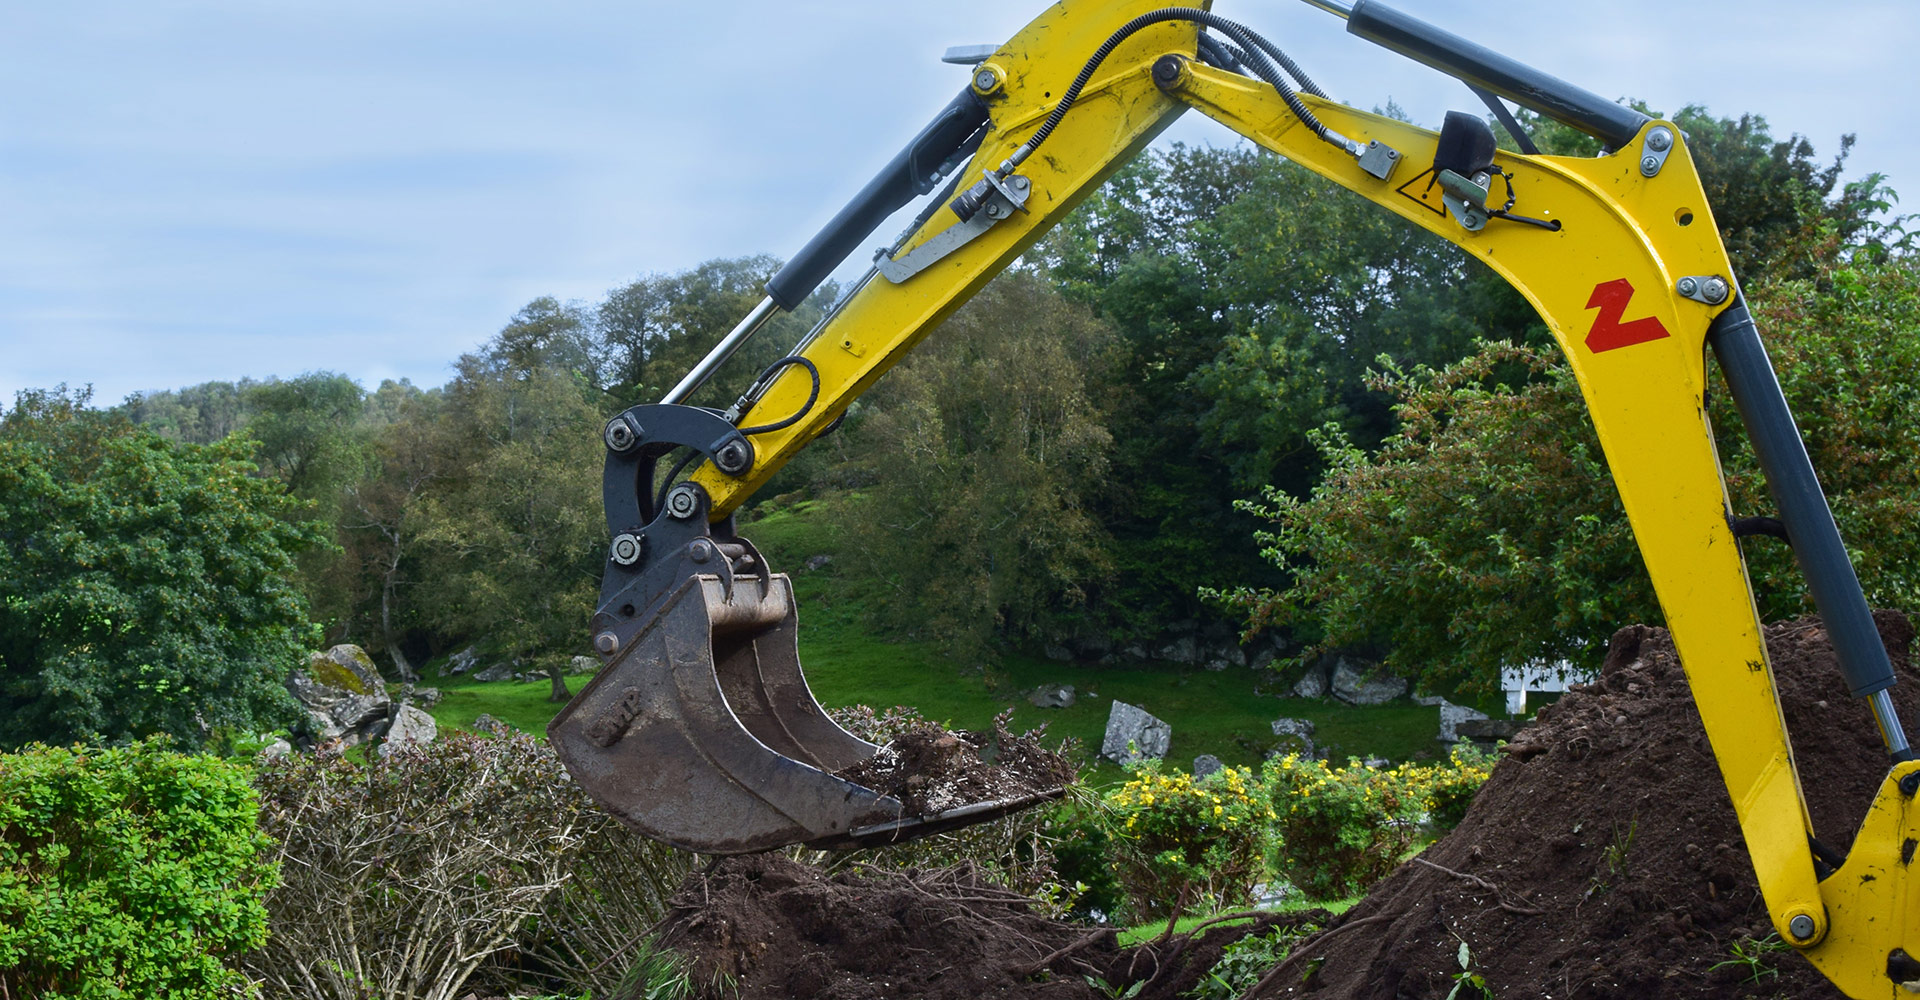 Db Tree and Garden - Domestic & Commercial LMachine hire with operators - North East